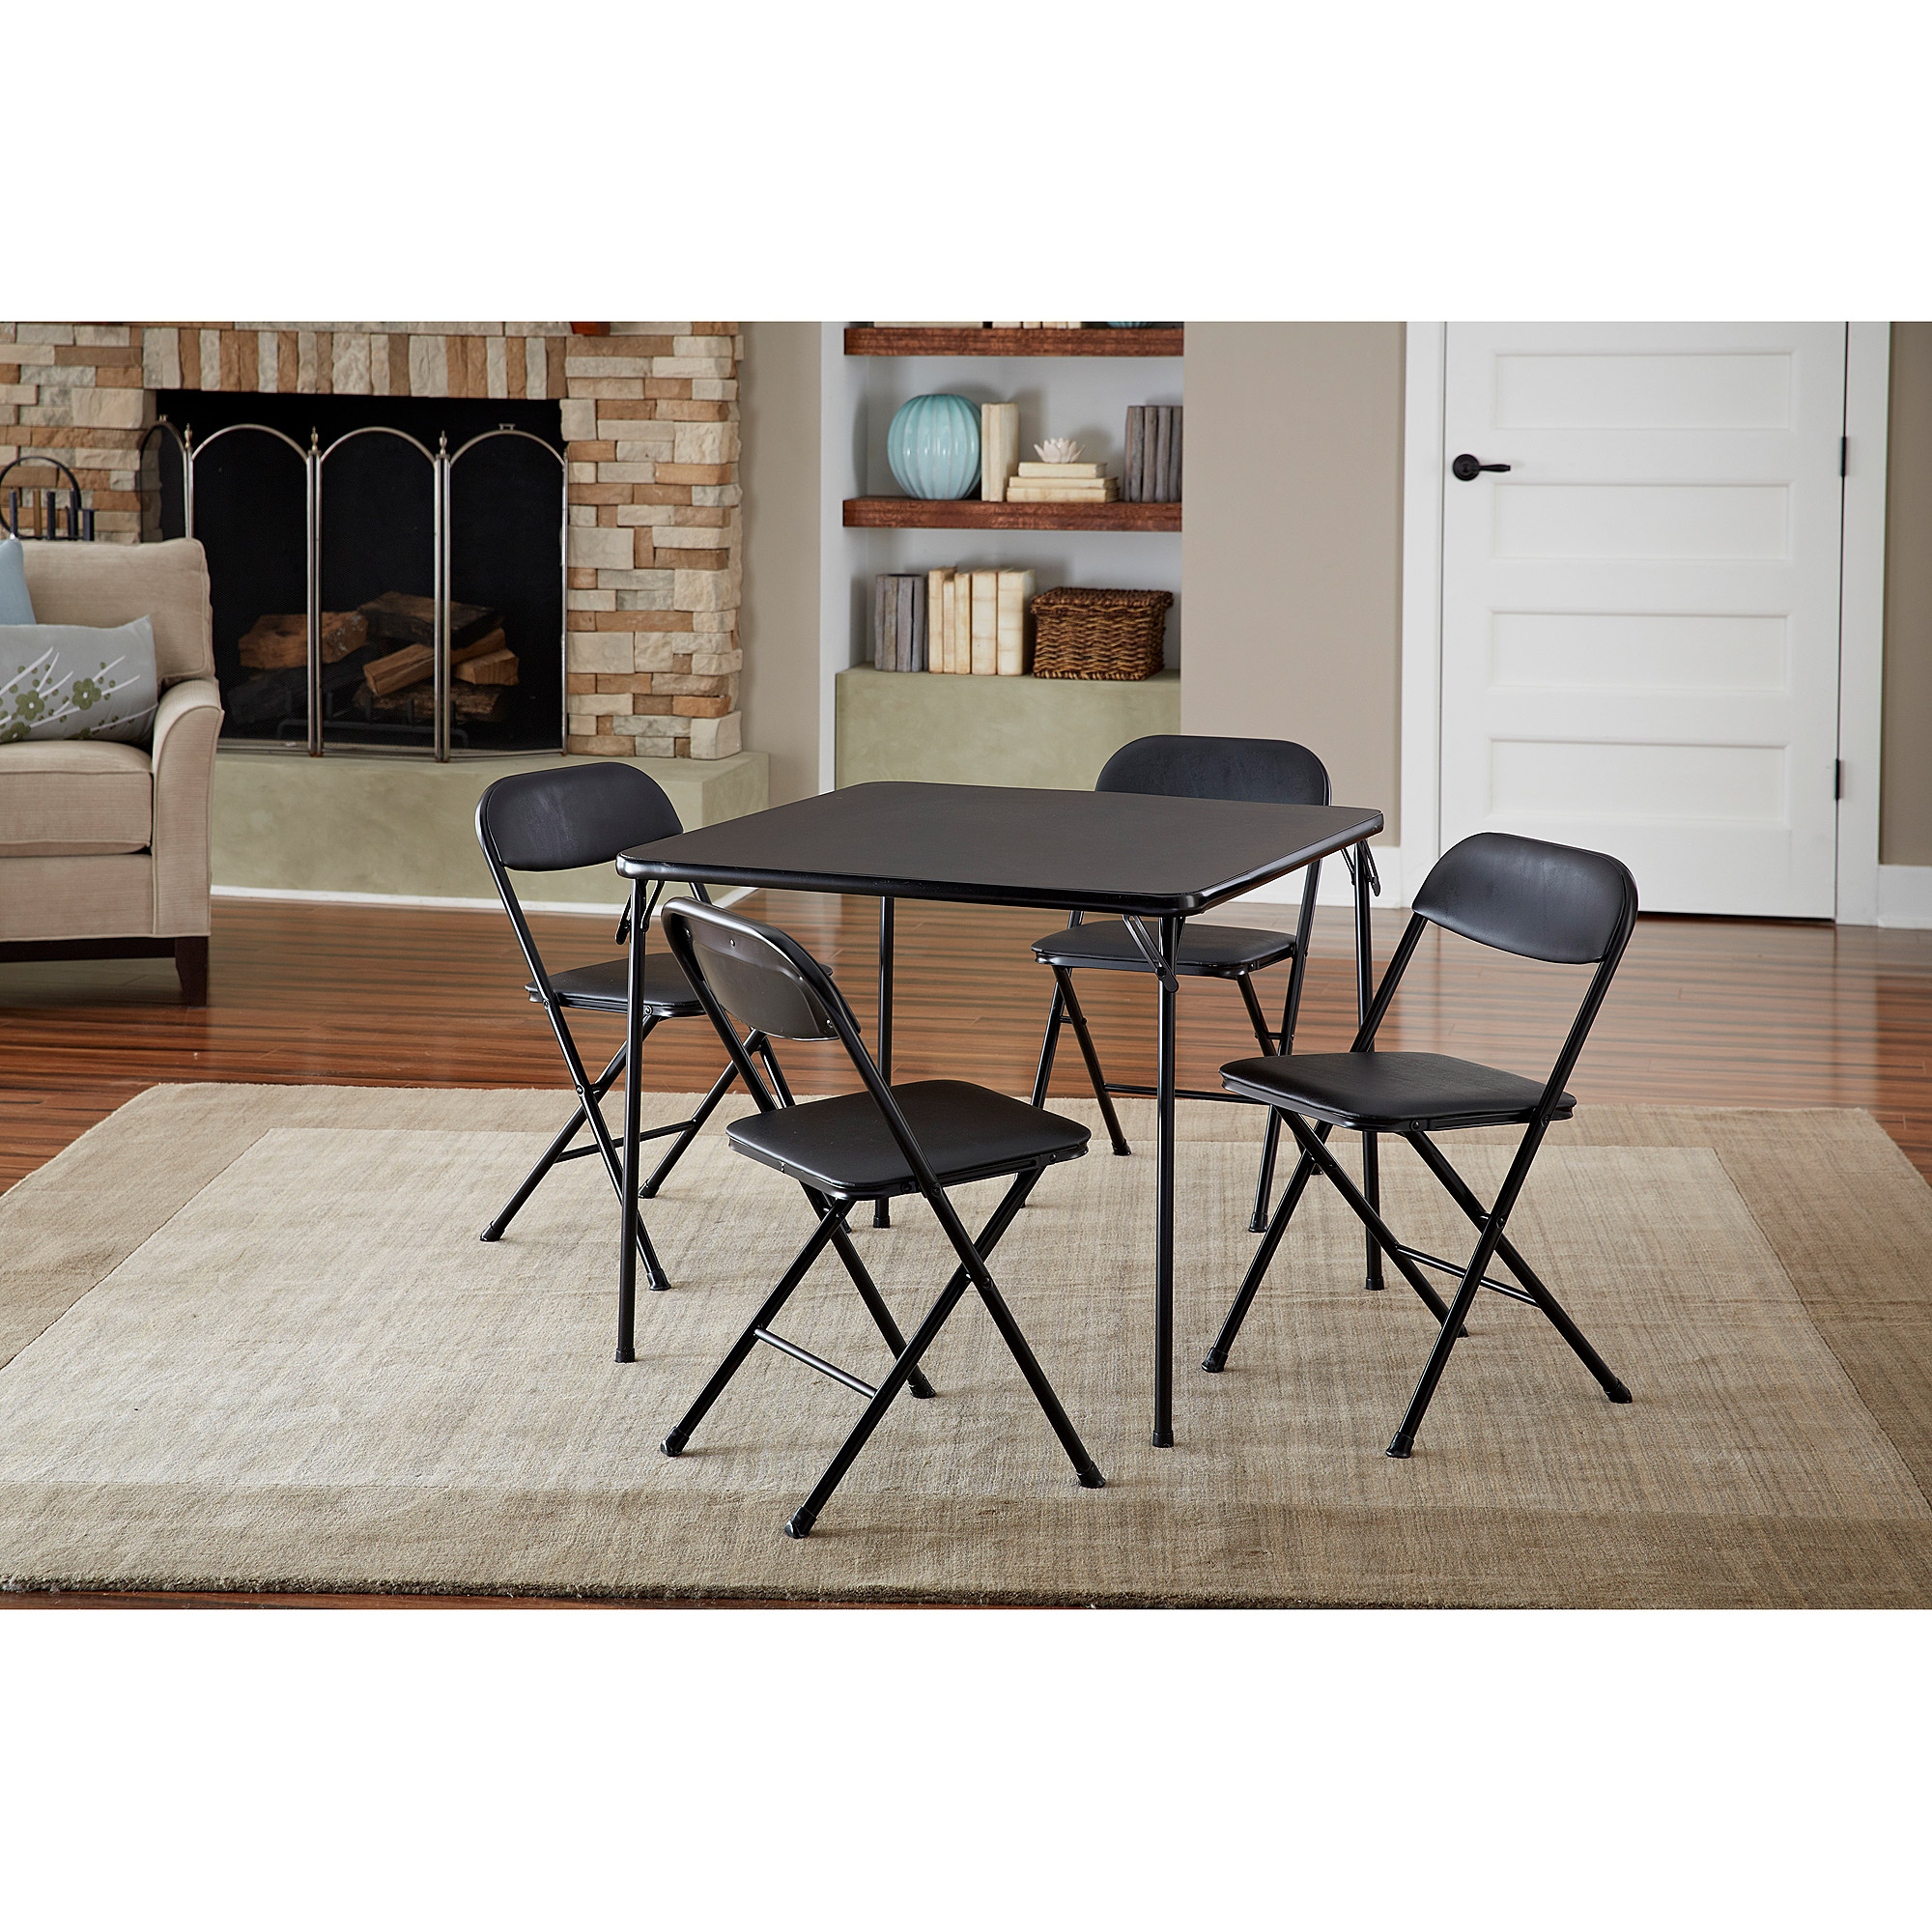 Cosco Resin 4-Pack Folding Chair with Molded Seat and Back, Multiple ...